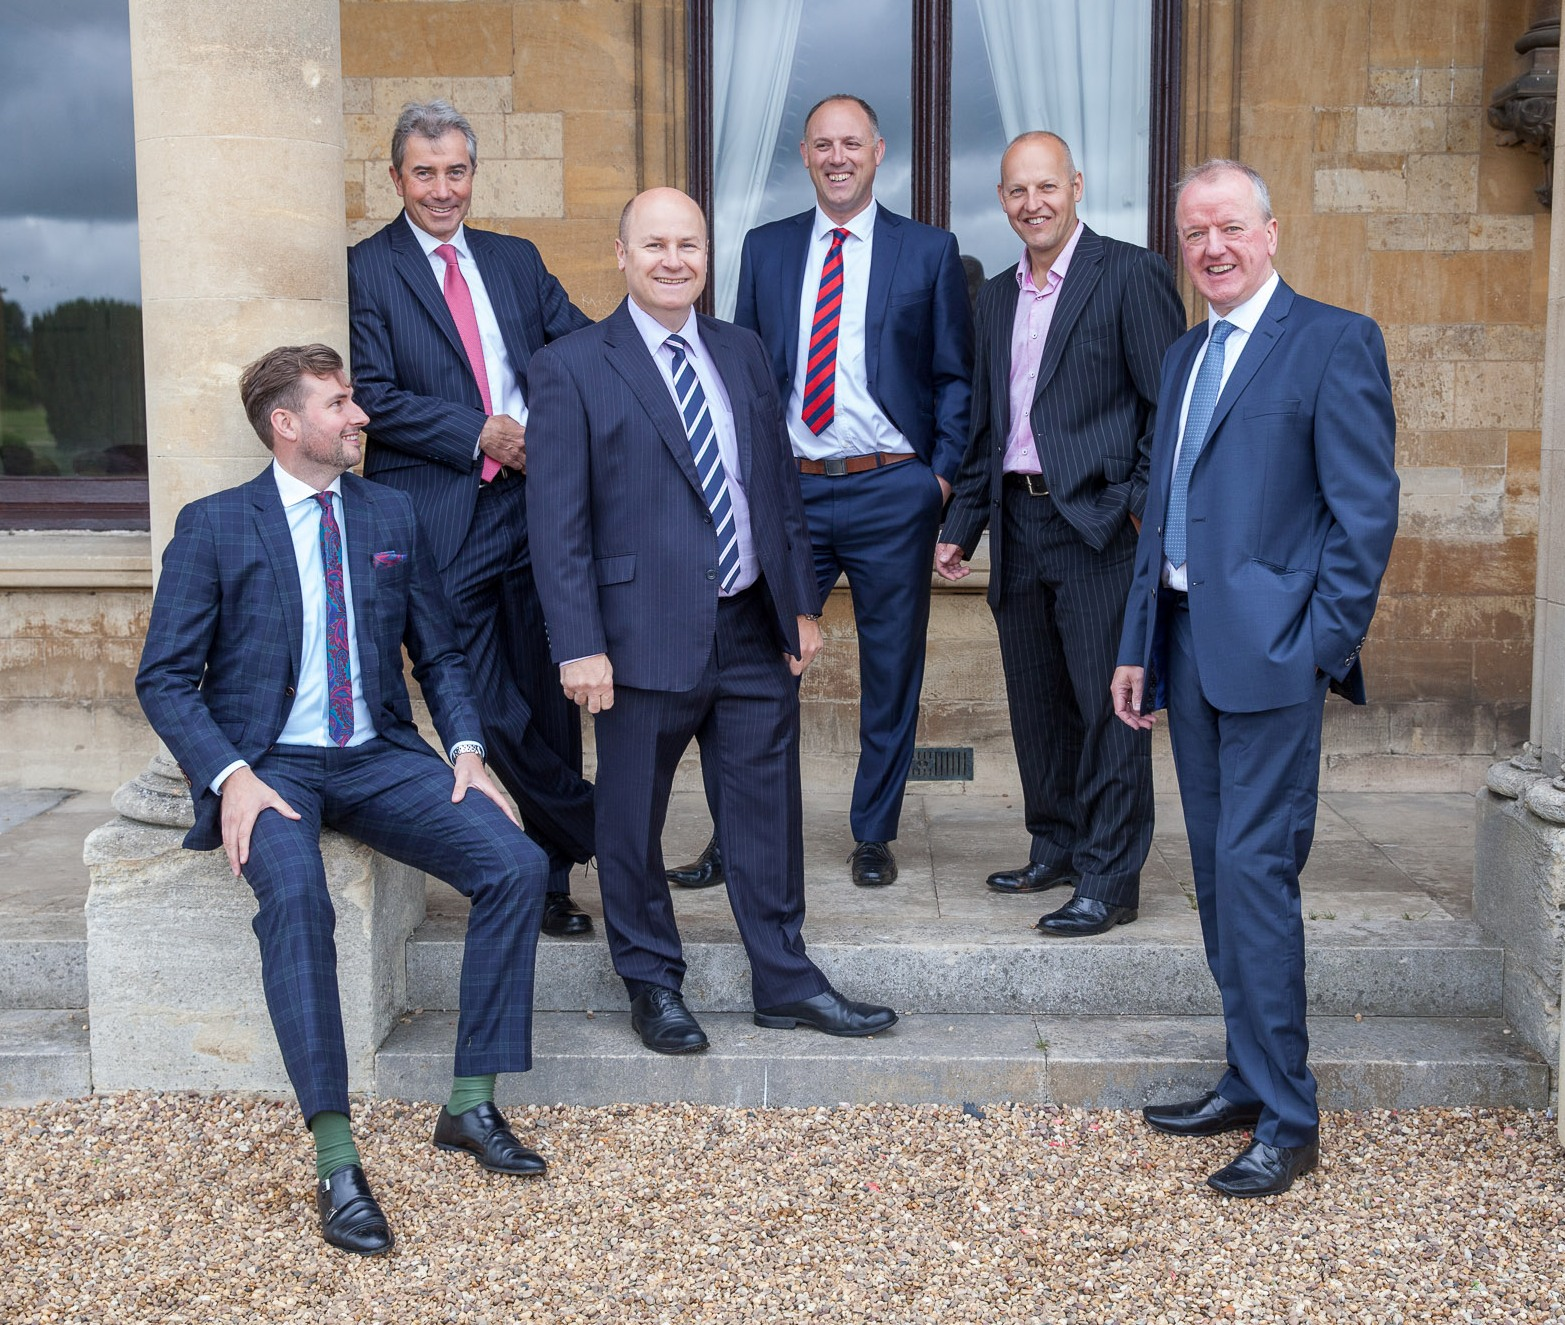 Pictured L-R Oliver Knight, James Walton, Marcus Faulkner, Sam Russell, Mike Cleary, Simon Wilkinson